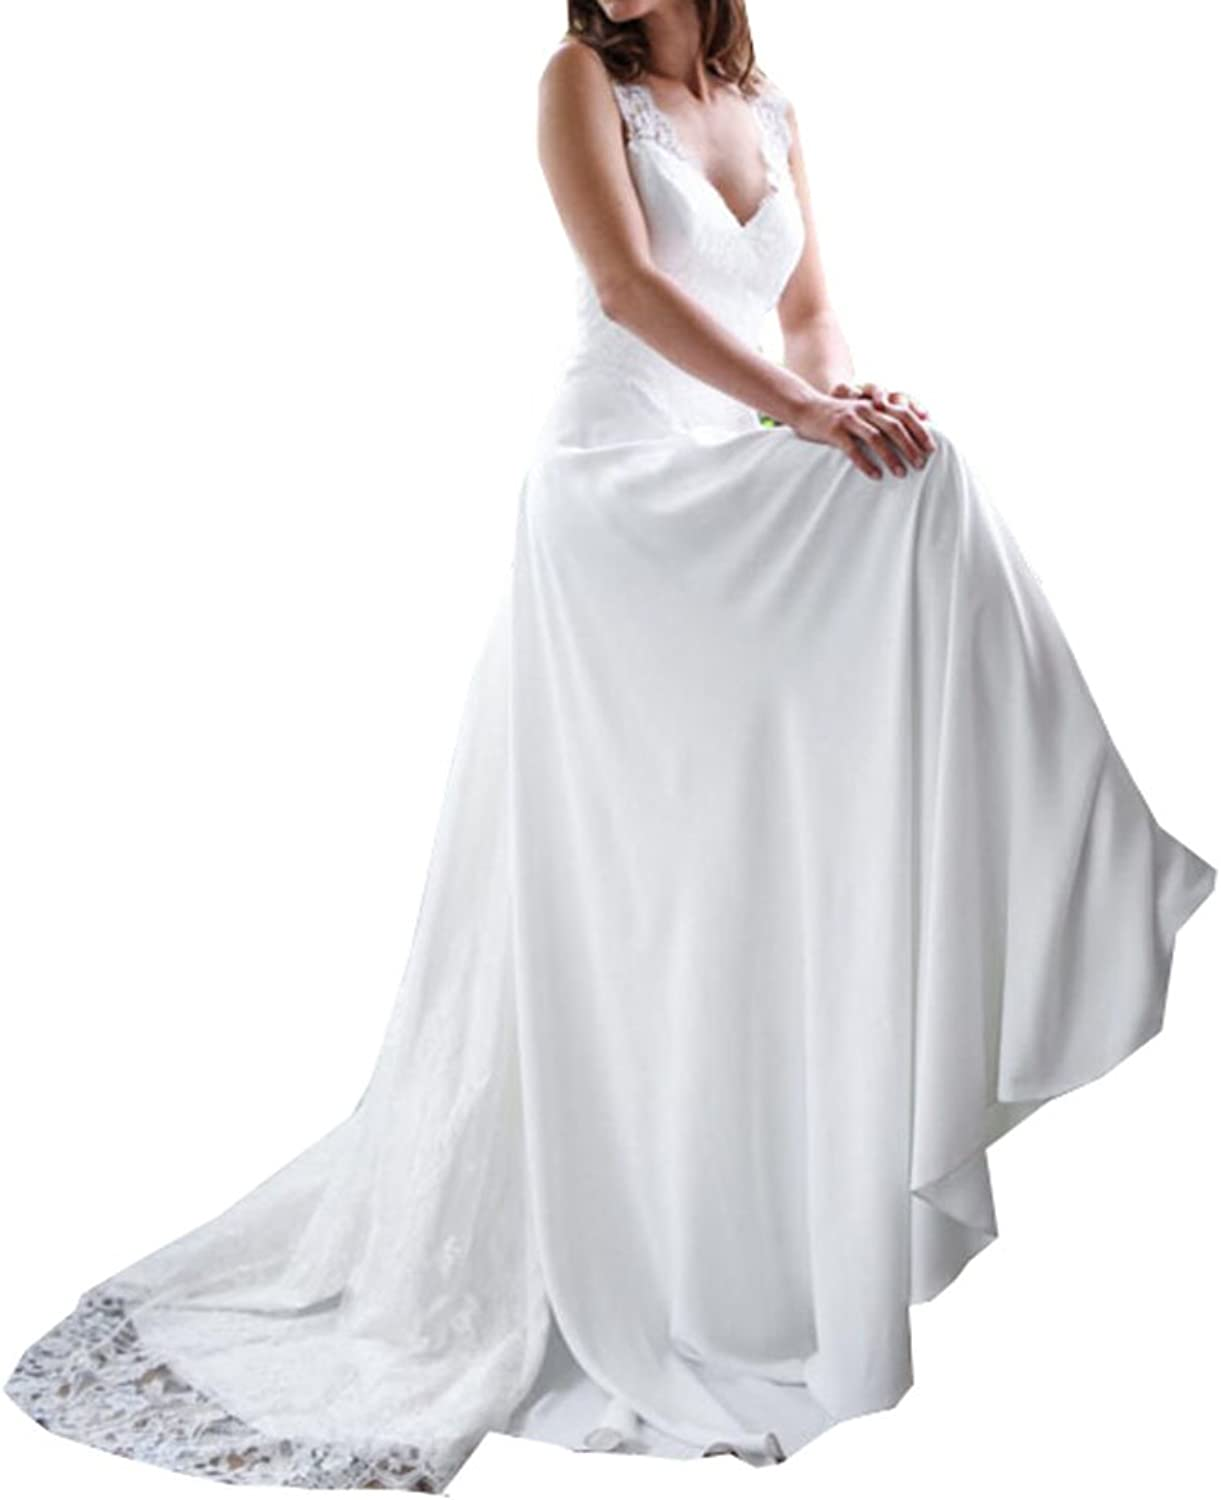 Special Bridal Strapless Wedding Dresses for Bride Lace Ruffled Long Beach Wedding Dress